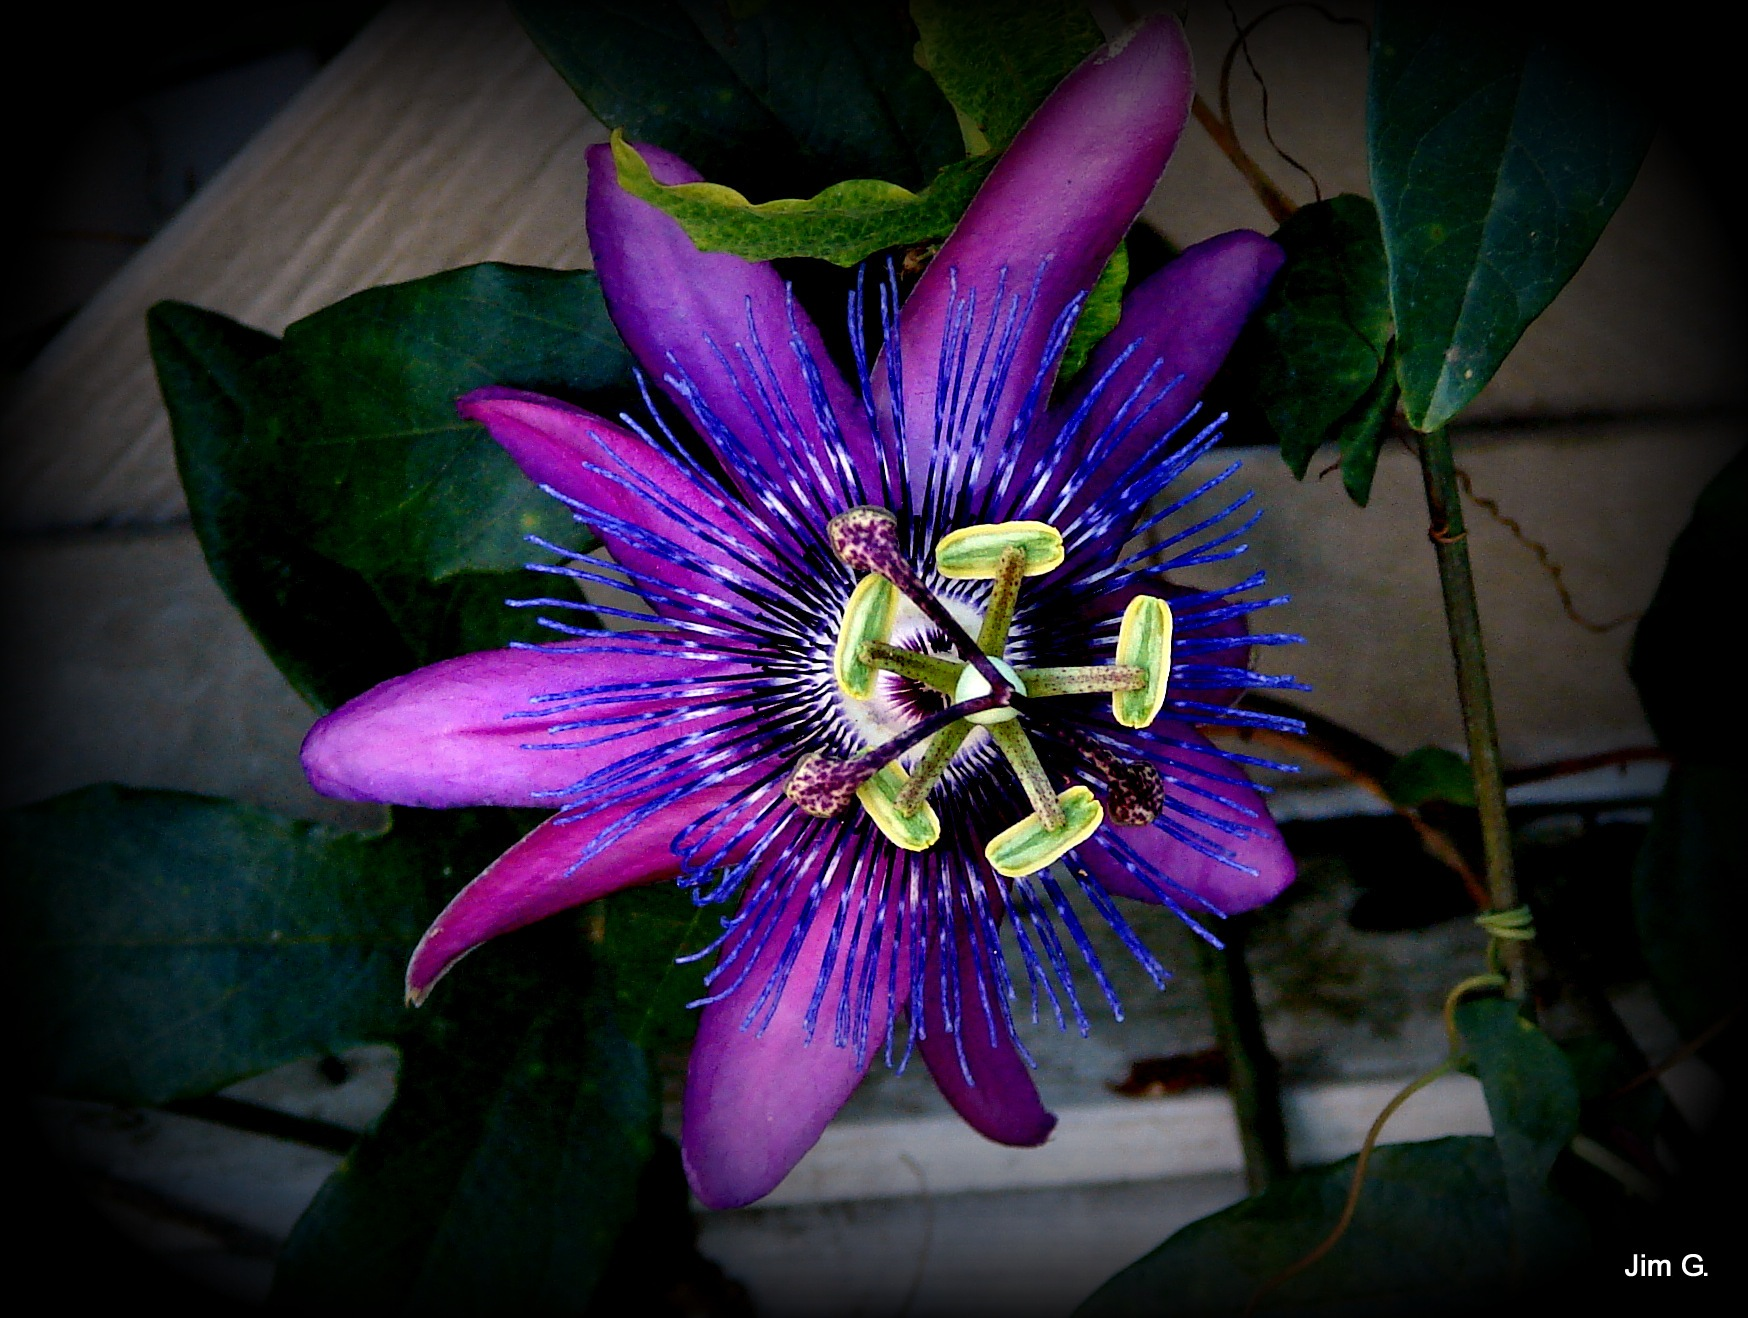 Another variety of passion flower by Jim Graham